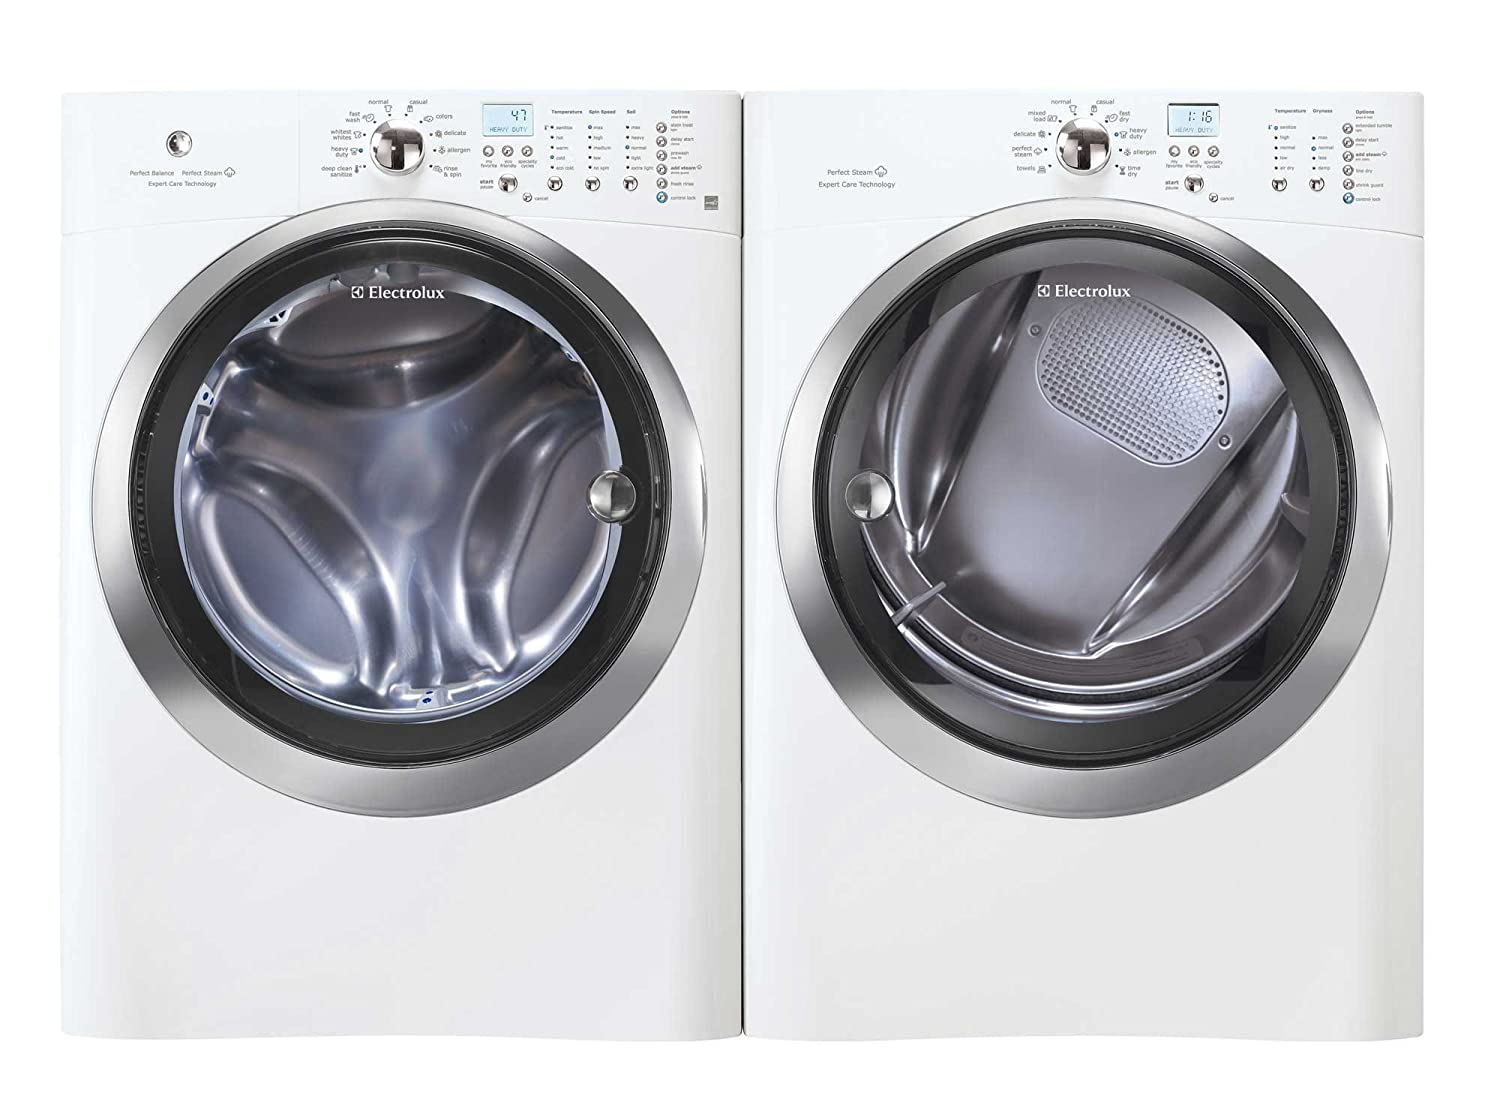 electrolux 24 washer. amazon.com: electrolux laundry bundle | eifls60jiw washer \u0026 eimed60jiw electric dryer - white: appliances 24 s